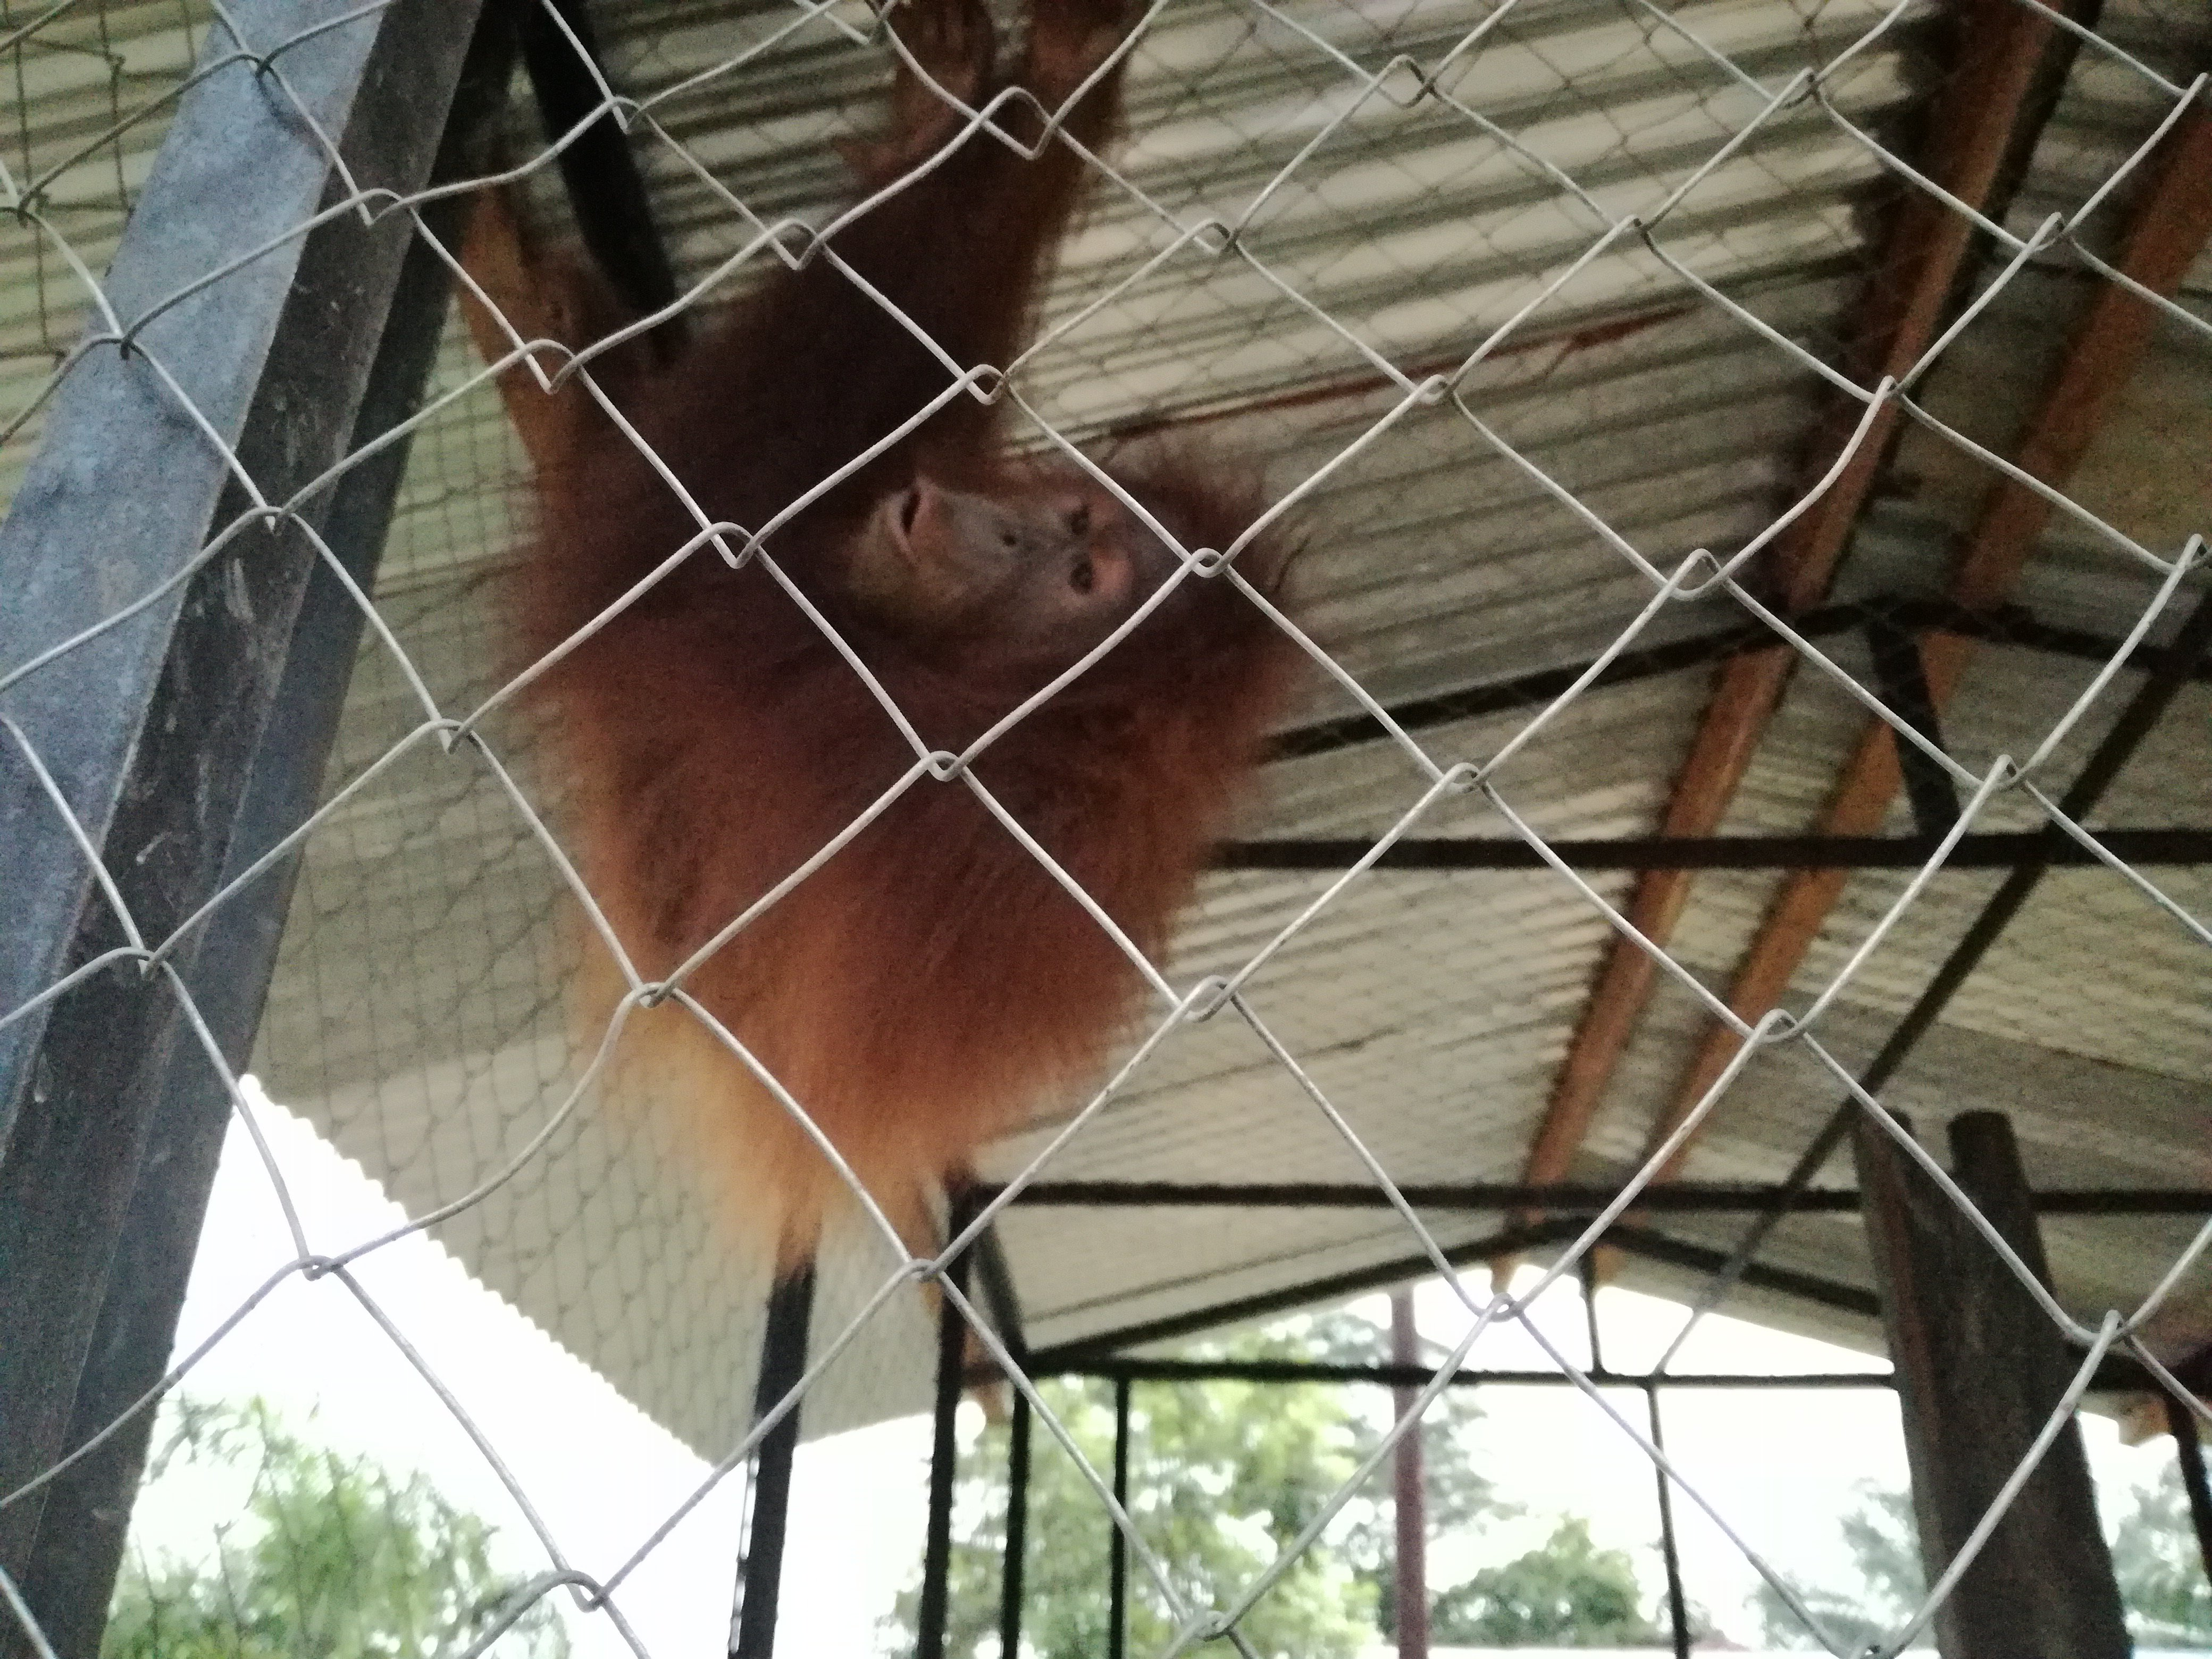 Second Chance at Life for Monik, a 4 Years Old Orangutan